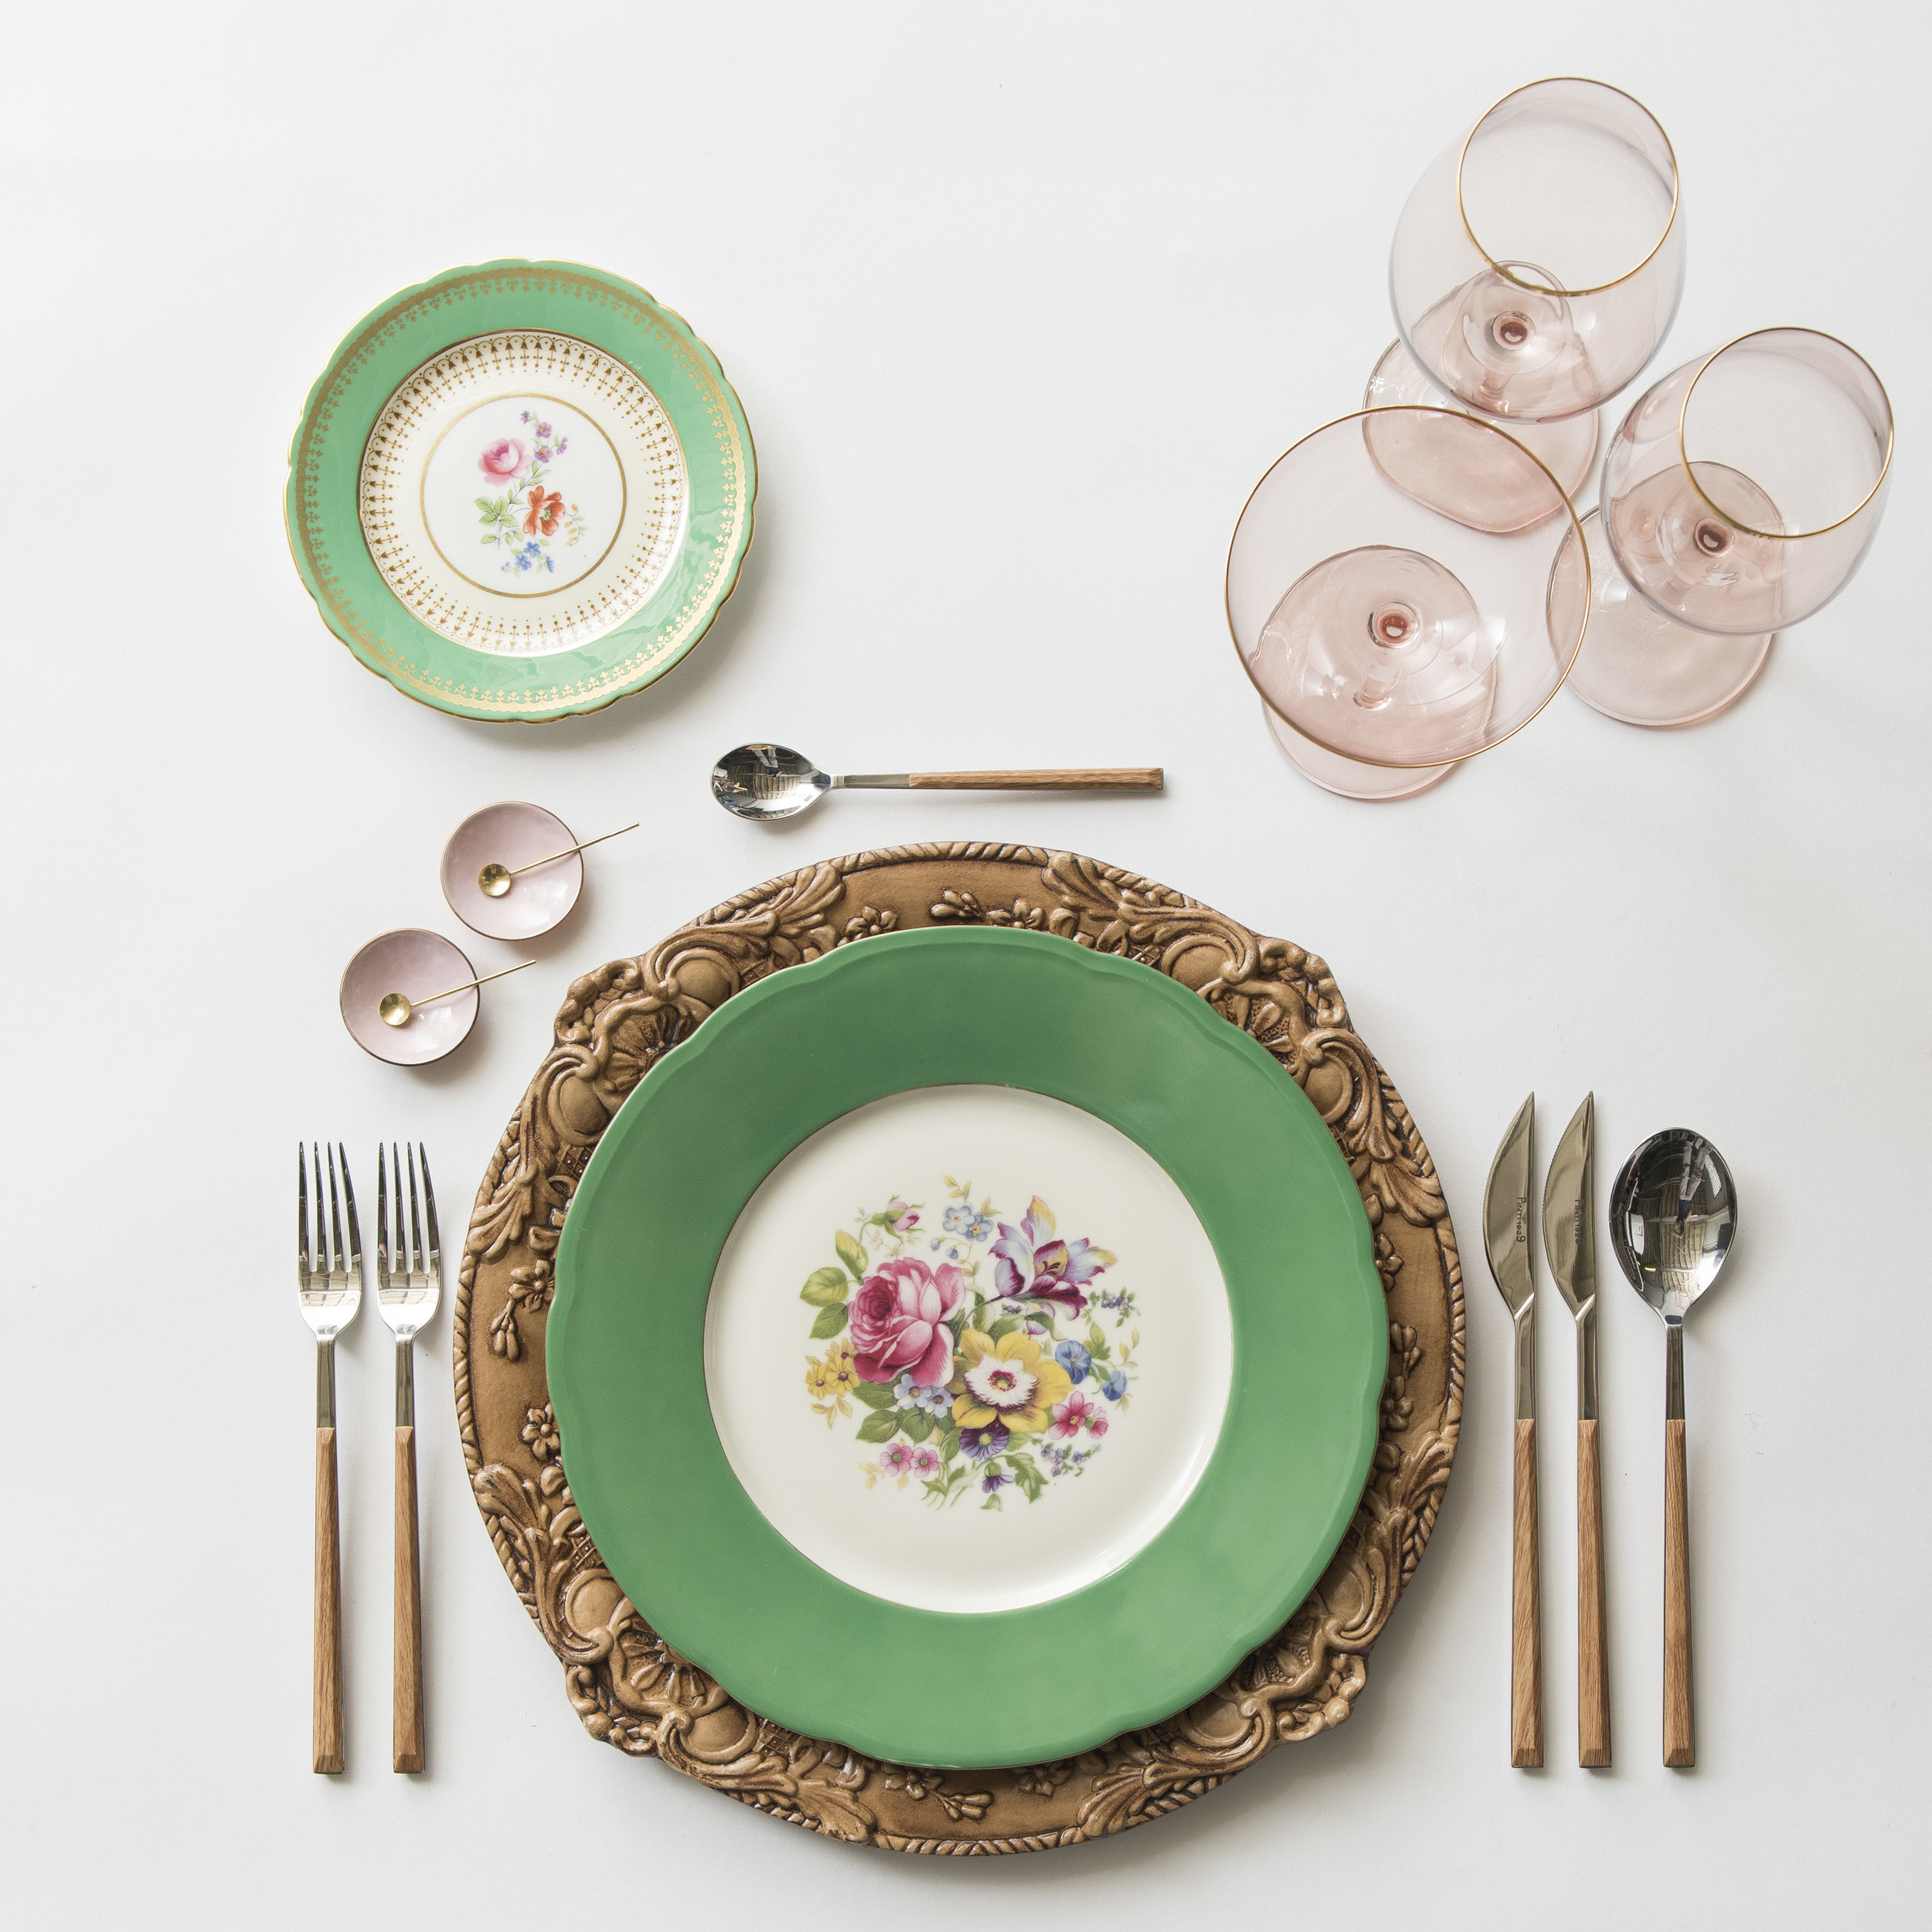 RENT: Verona Chargers in Walnut + Green Botanicals Vintage China + Danish Flatware in Teak + Bella 24k Gold Rimmed Stemware in Blush + Pink Enamel Salt Cellars + Tiny Gold Spoons  SHOP: Verona Chargers in Walnut + Bella 24k Gold Rimmed Stemware in Blush + Pink Enamel Salt Cellars + Tiny Gold Spoons